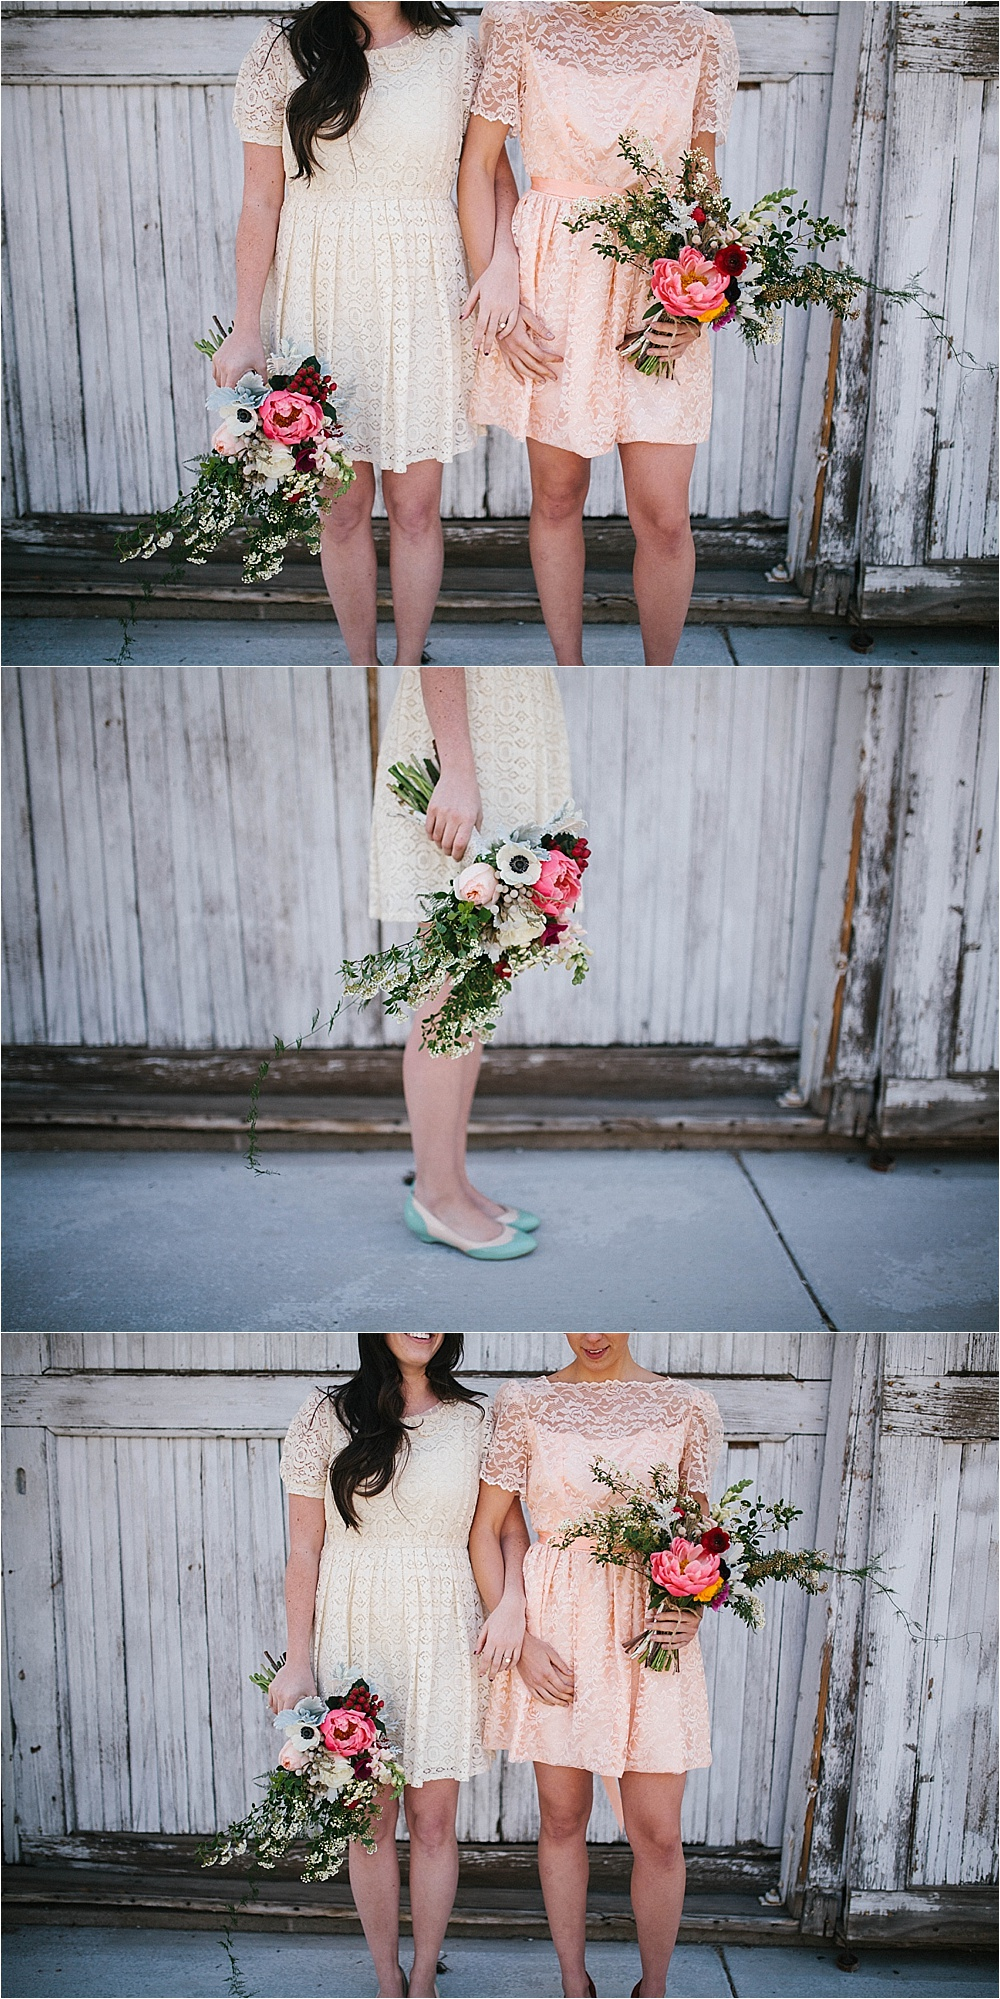 manzanita photo by rebecca caridad wedding lifestlye photography floral design calligraphy_1252.jpg